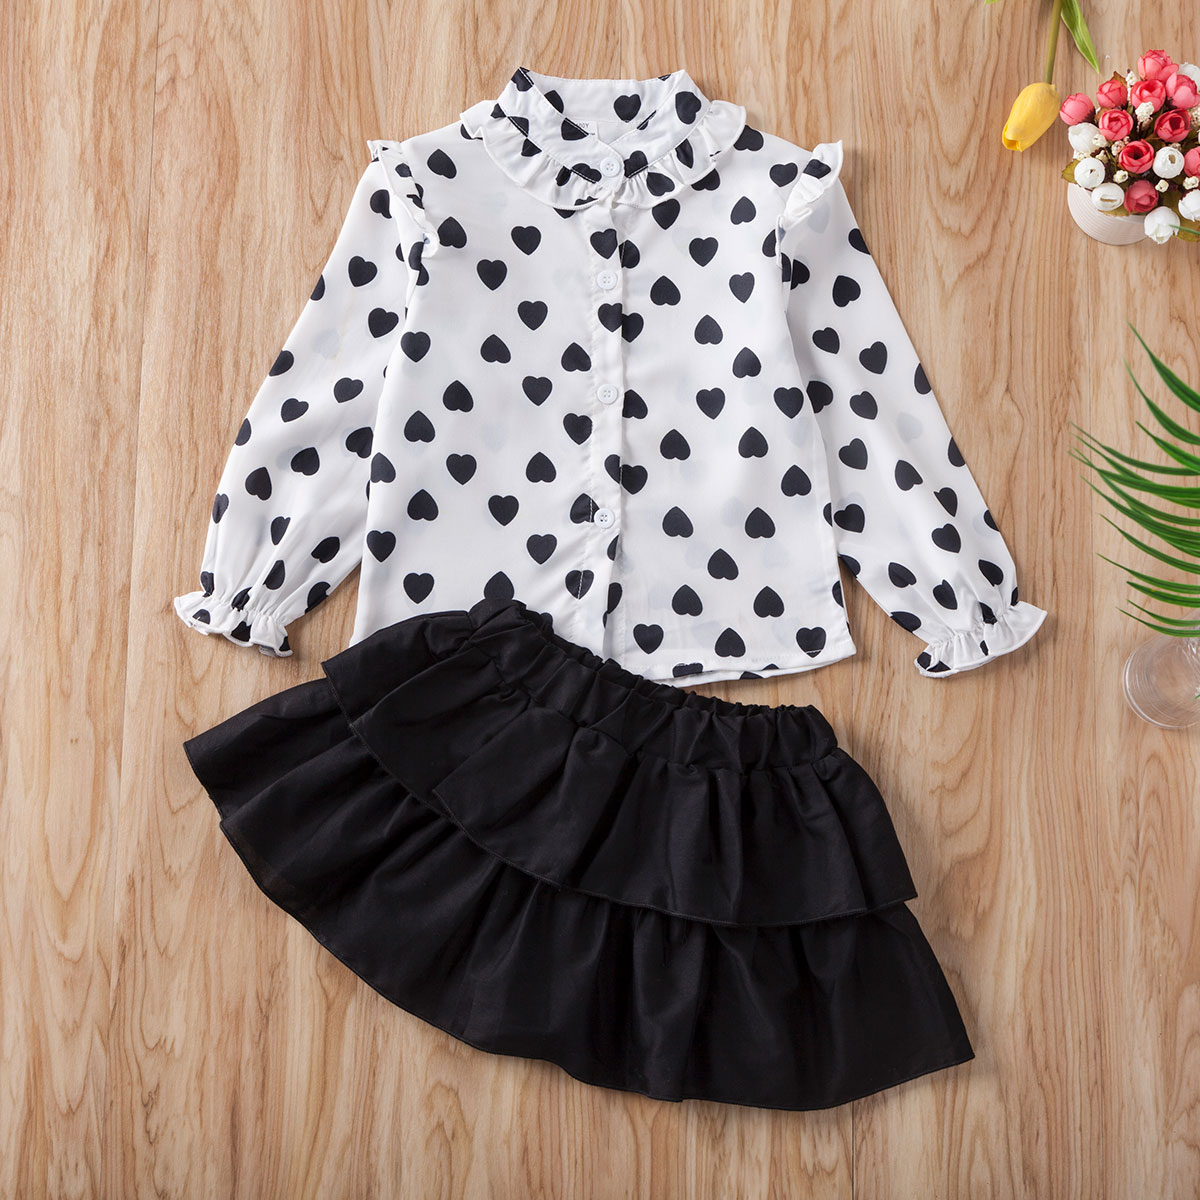 Pudcoco Toddler Baby Girl Clothes Love Peach Heart Print Shirt Tops Solid Color Ruffle Mini Skirt 2Pcs Outfits Clothes